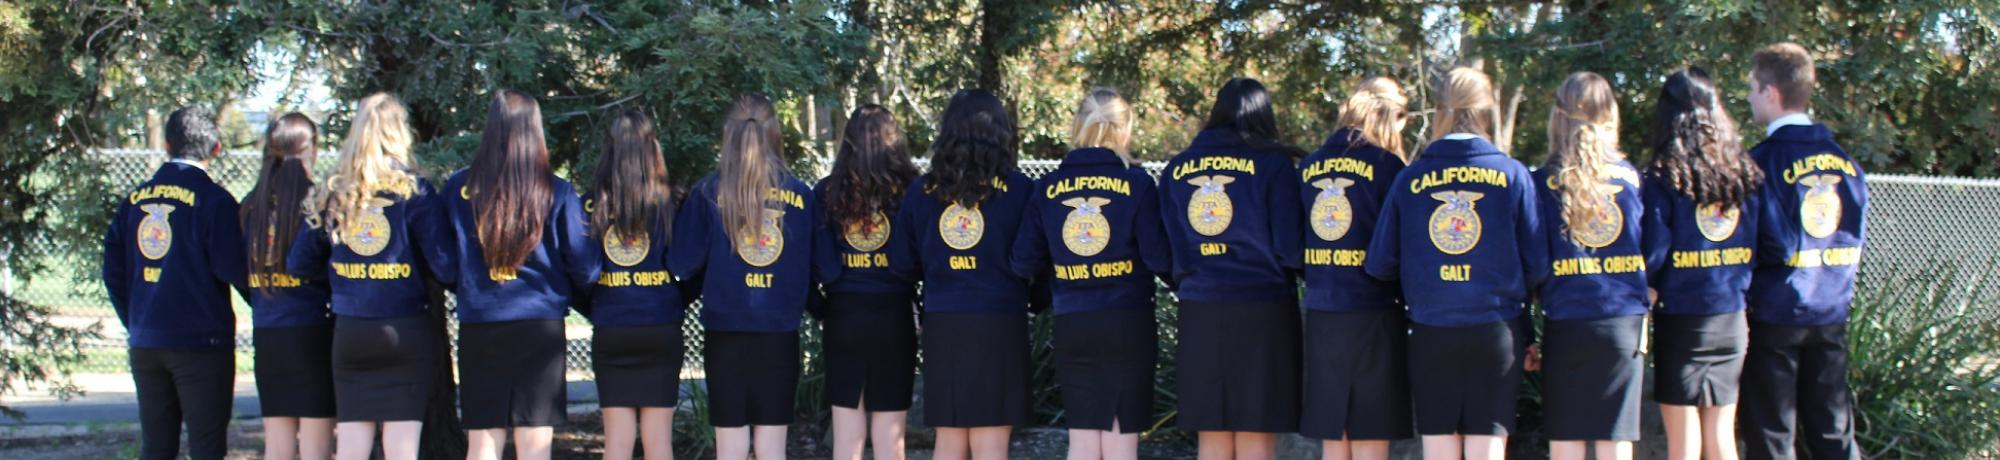 FFA Students in Competition Uniform